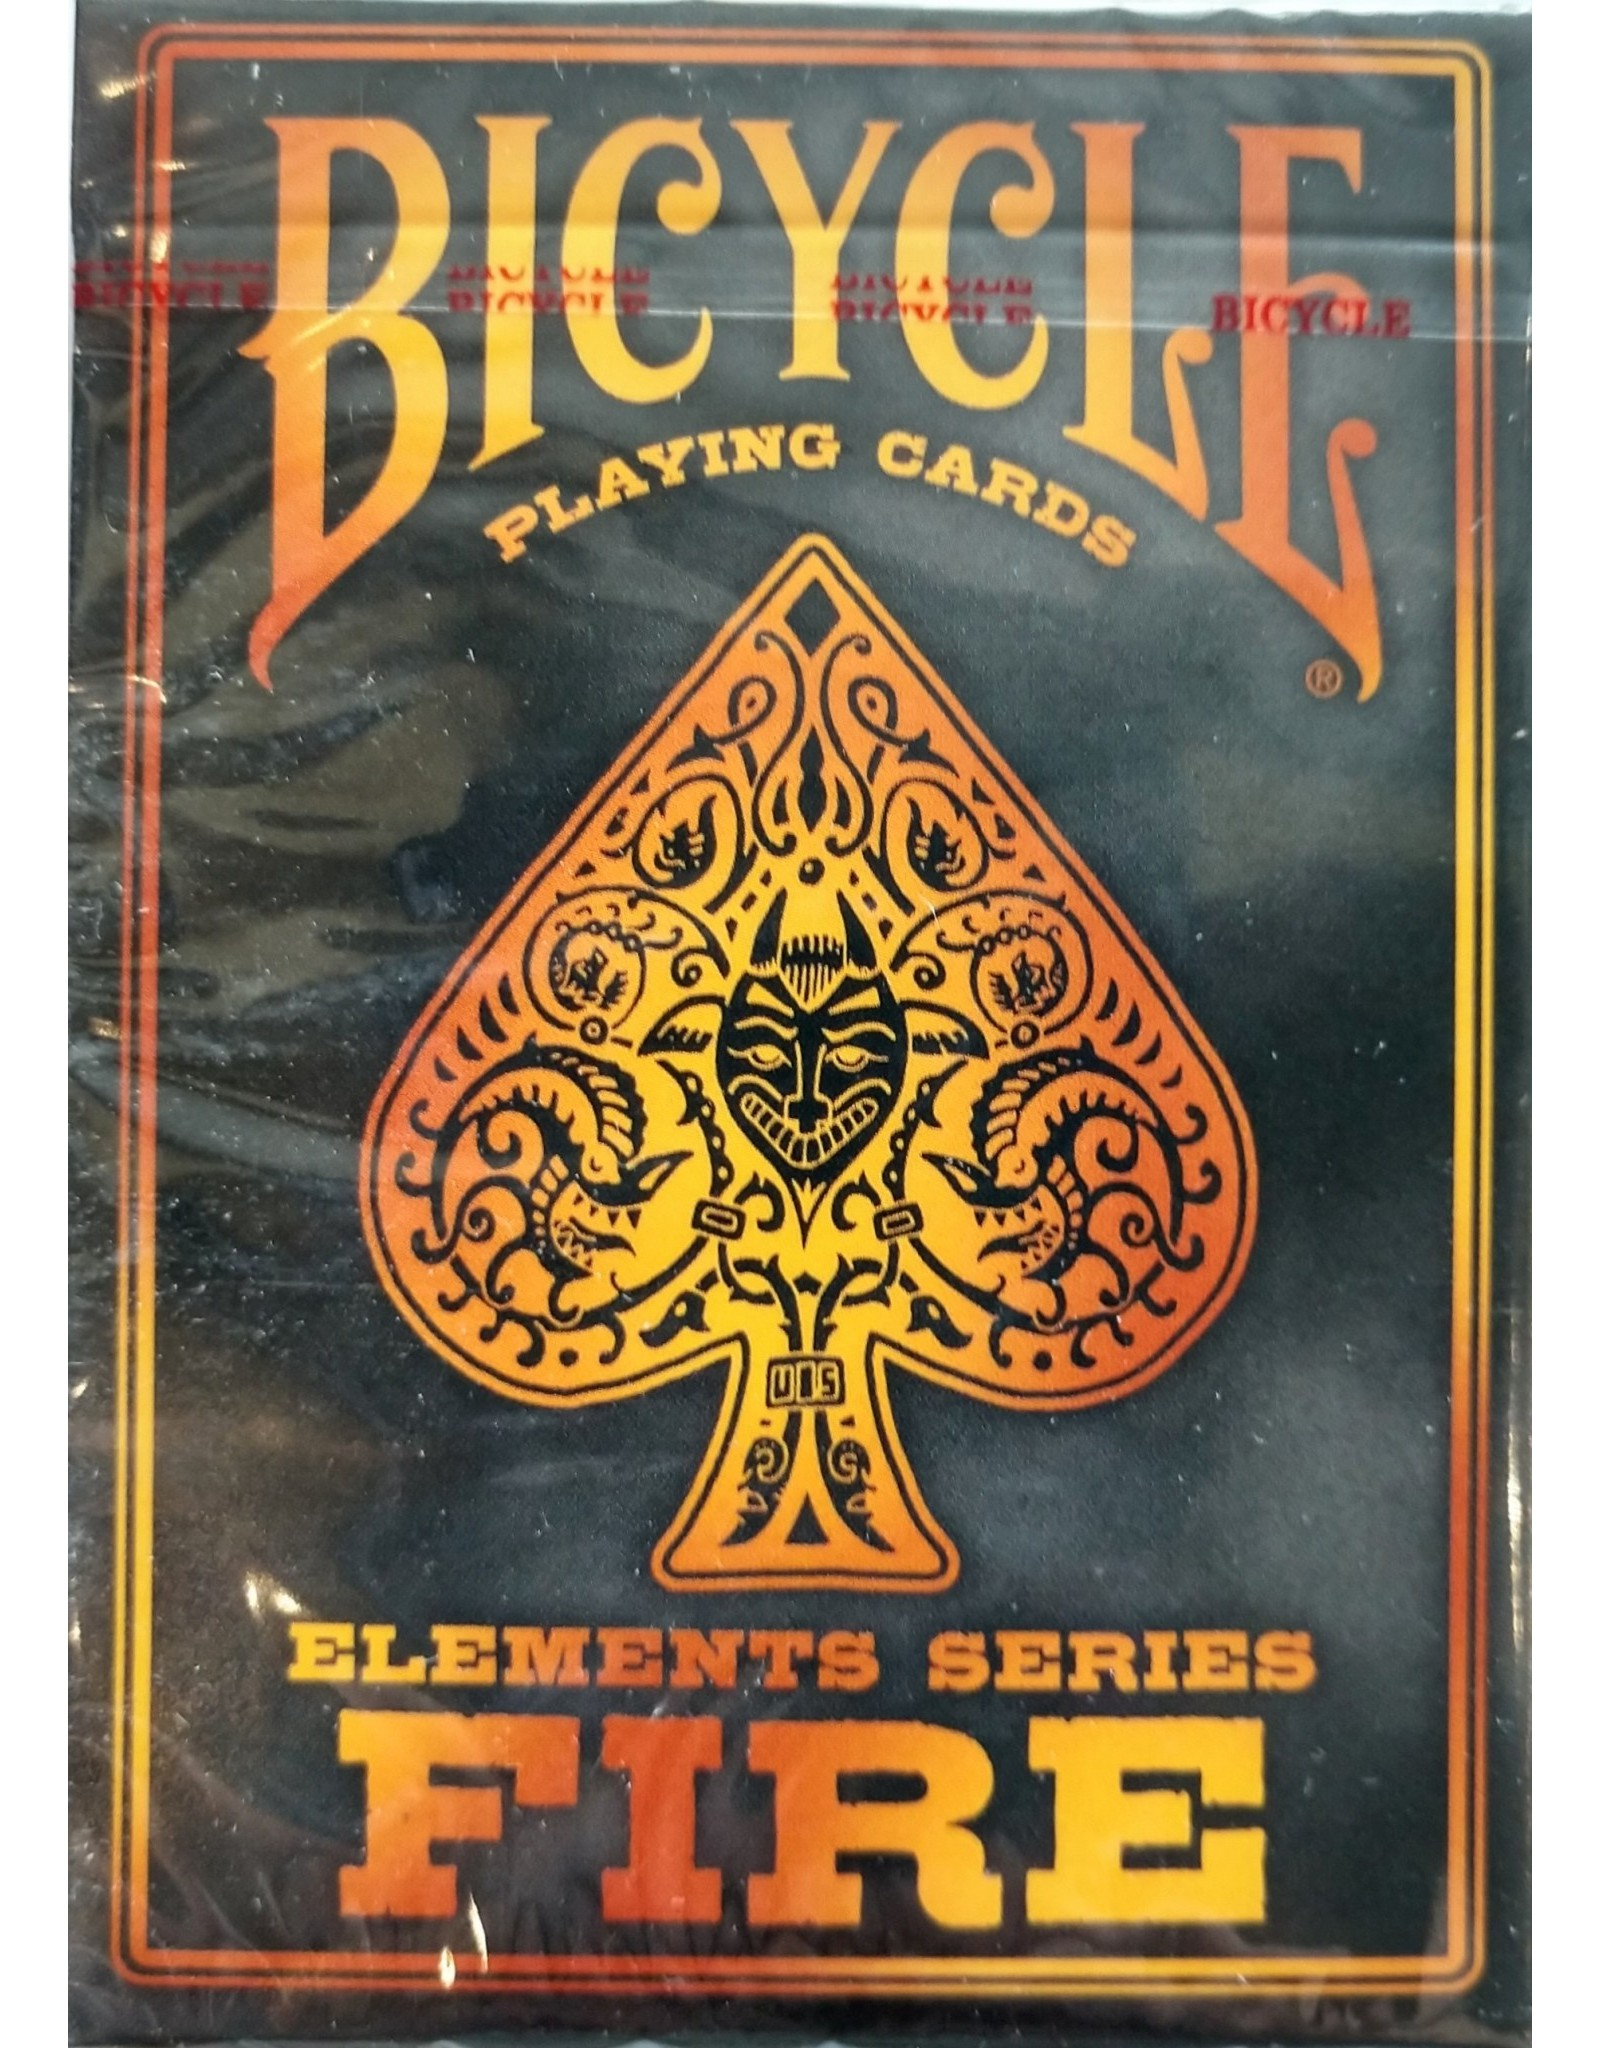 Bicycle Playing Cards Elements Series: Fire Playing Cards